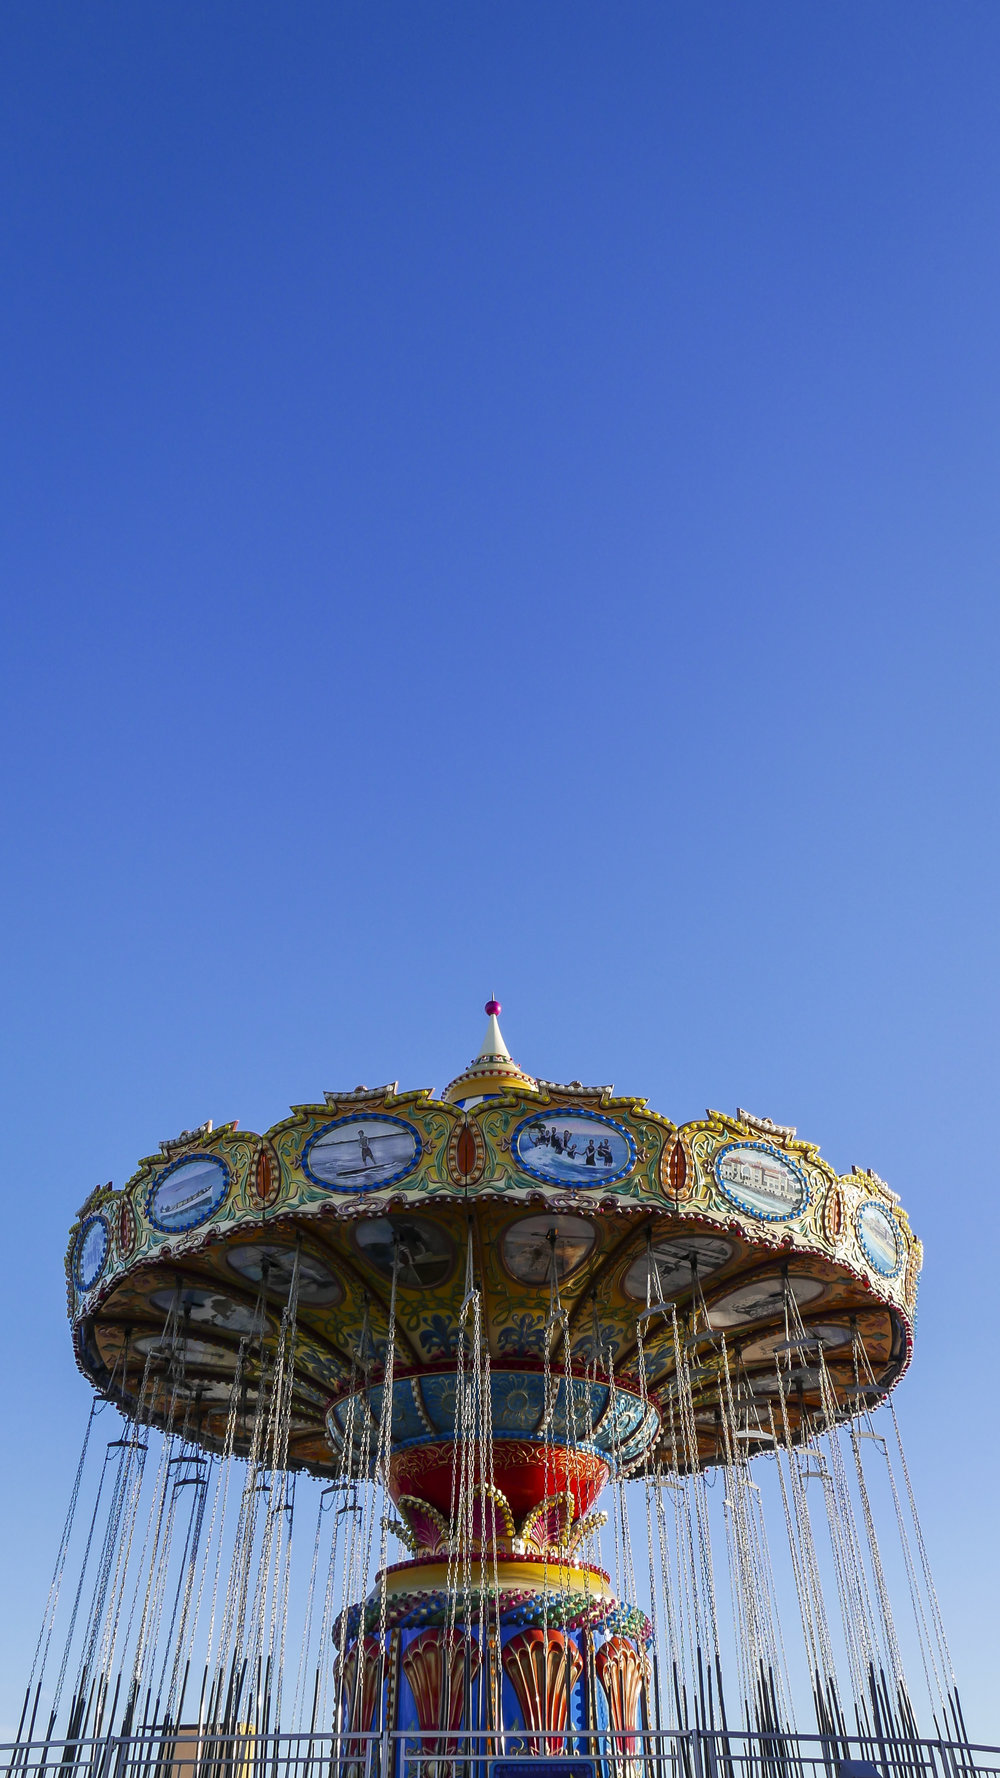 JWP_SantaCruz_Boardwalk-1030200.jpg